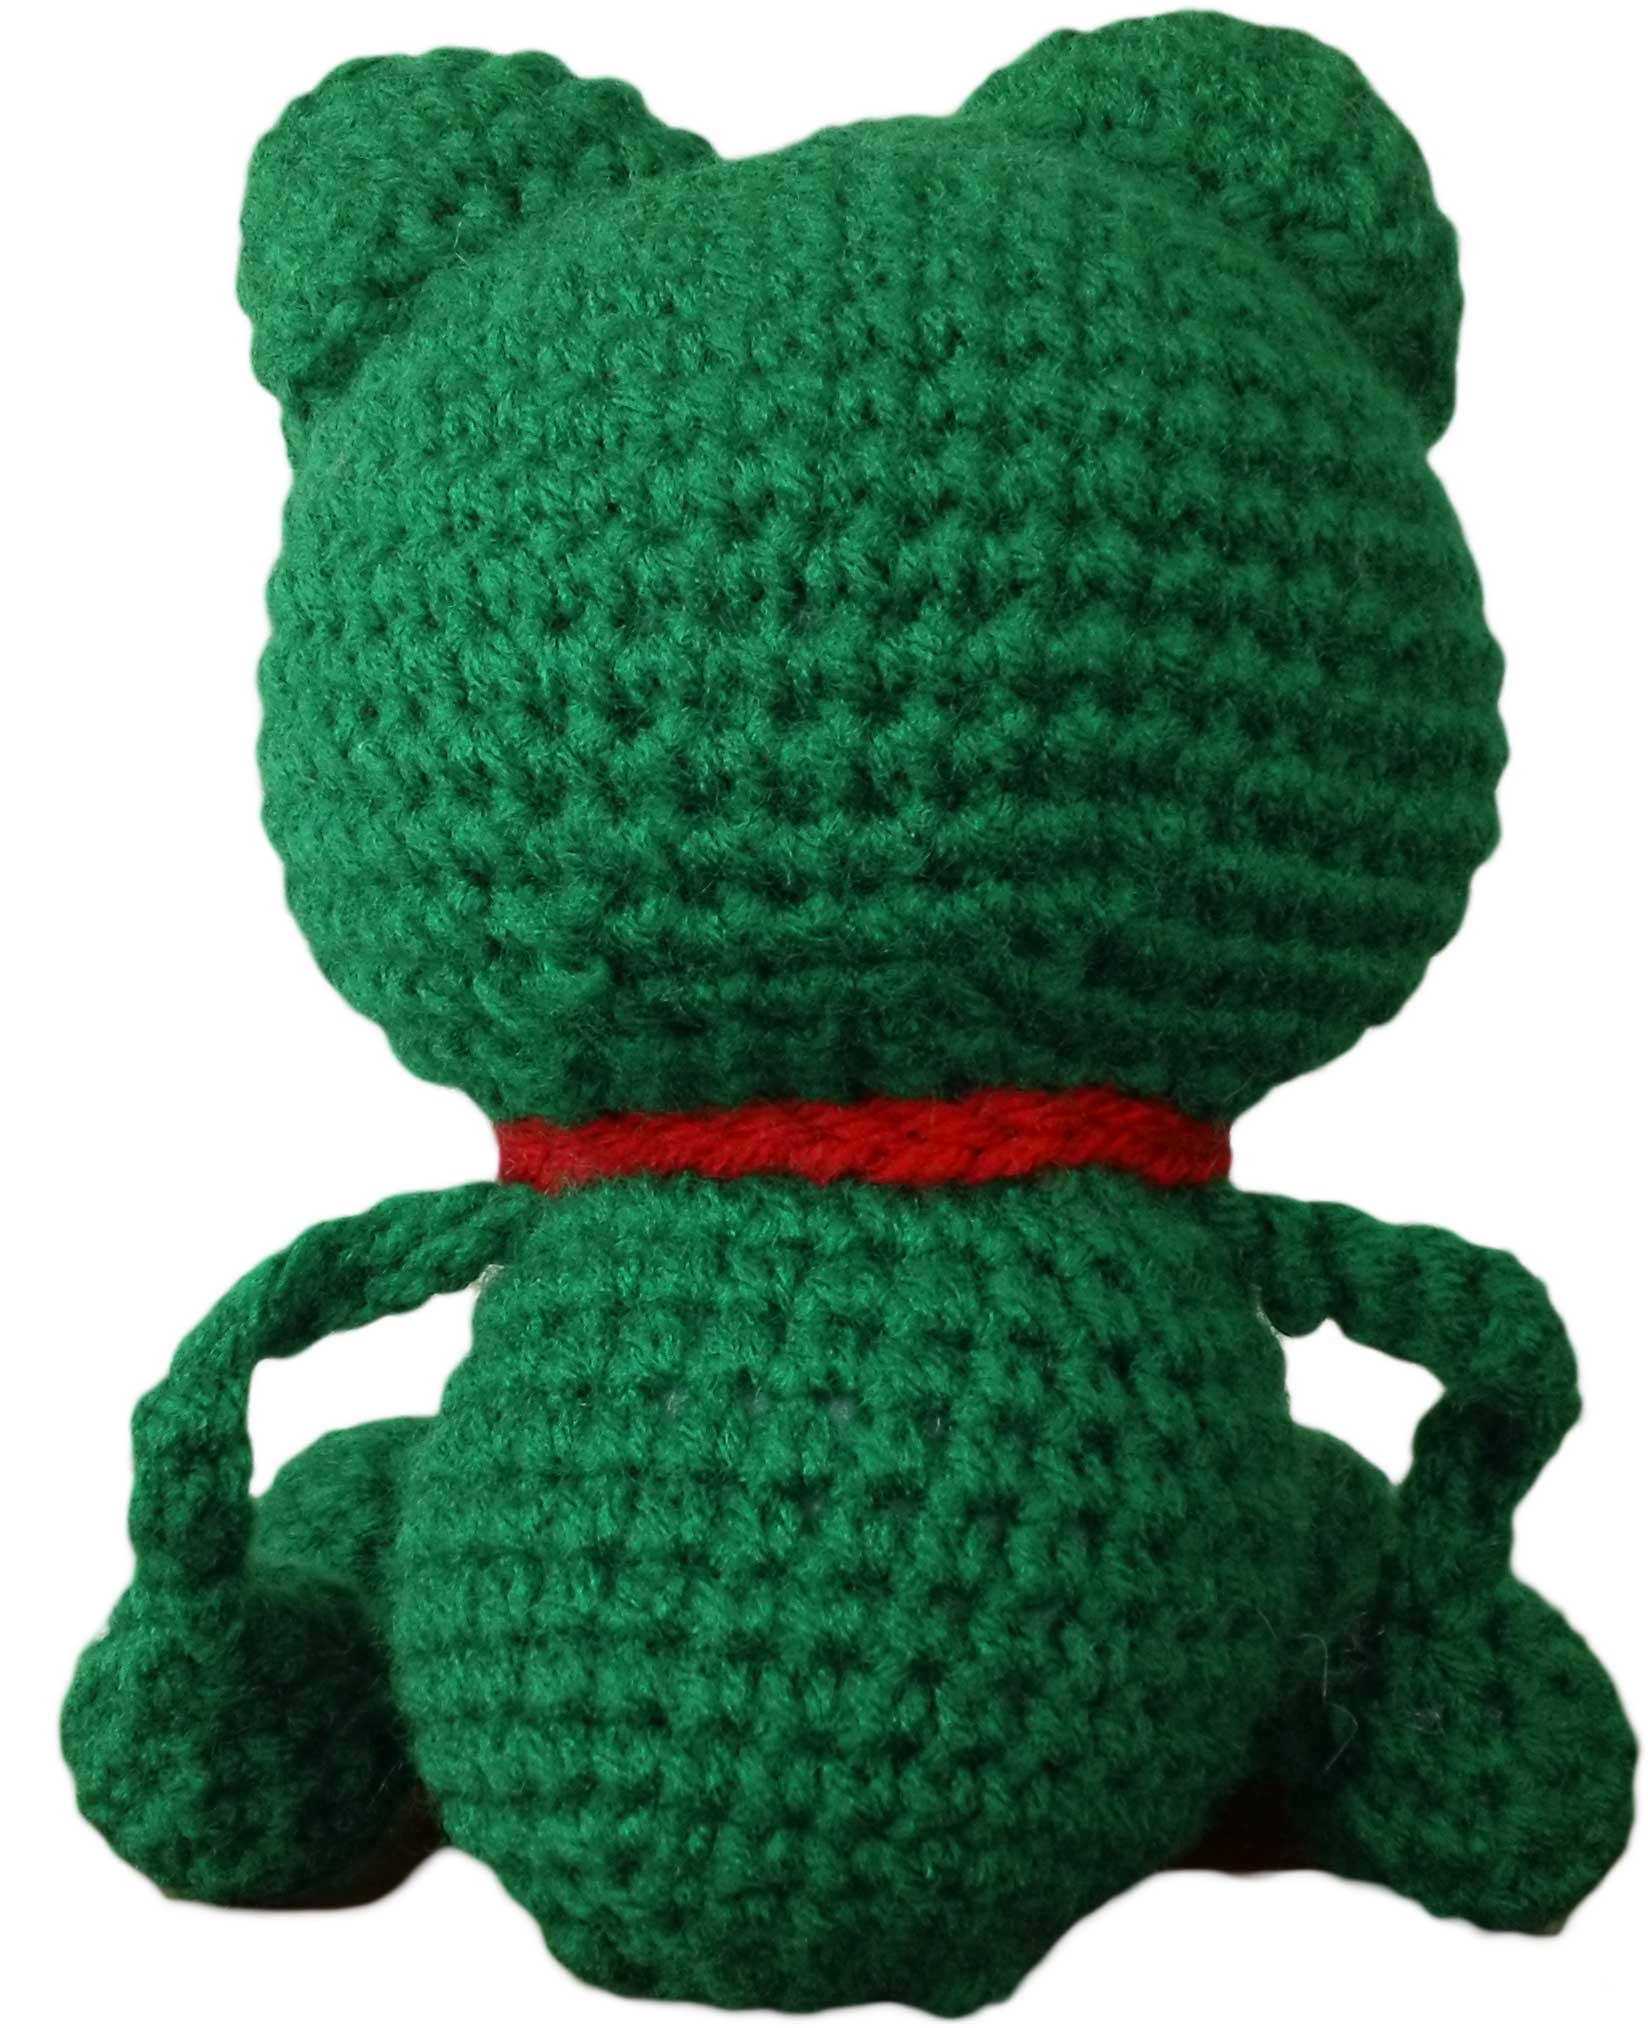 Crochet frog pattern attach arms by stitching them into both sides of the frogs body underneath the head bankloansurffo Gallery